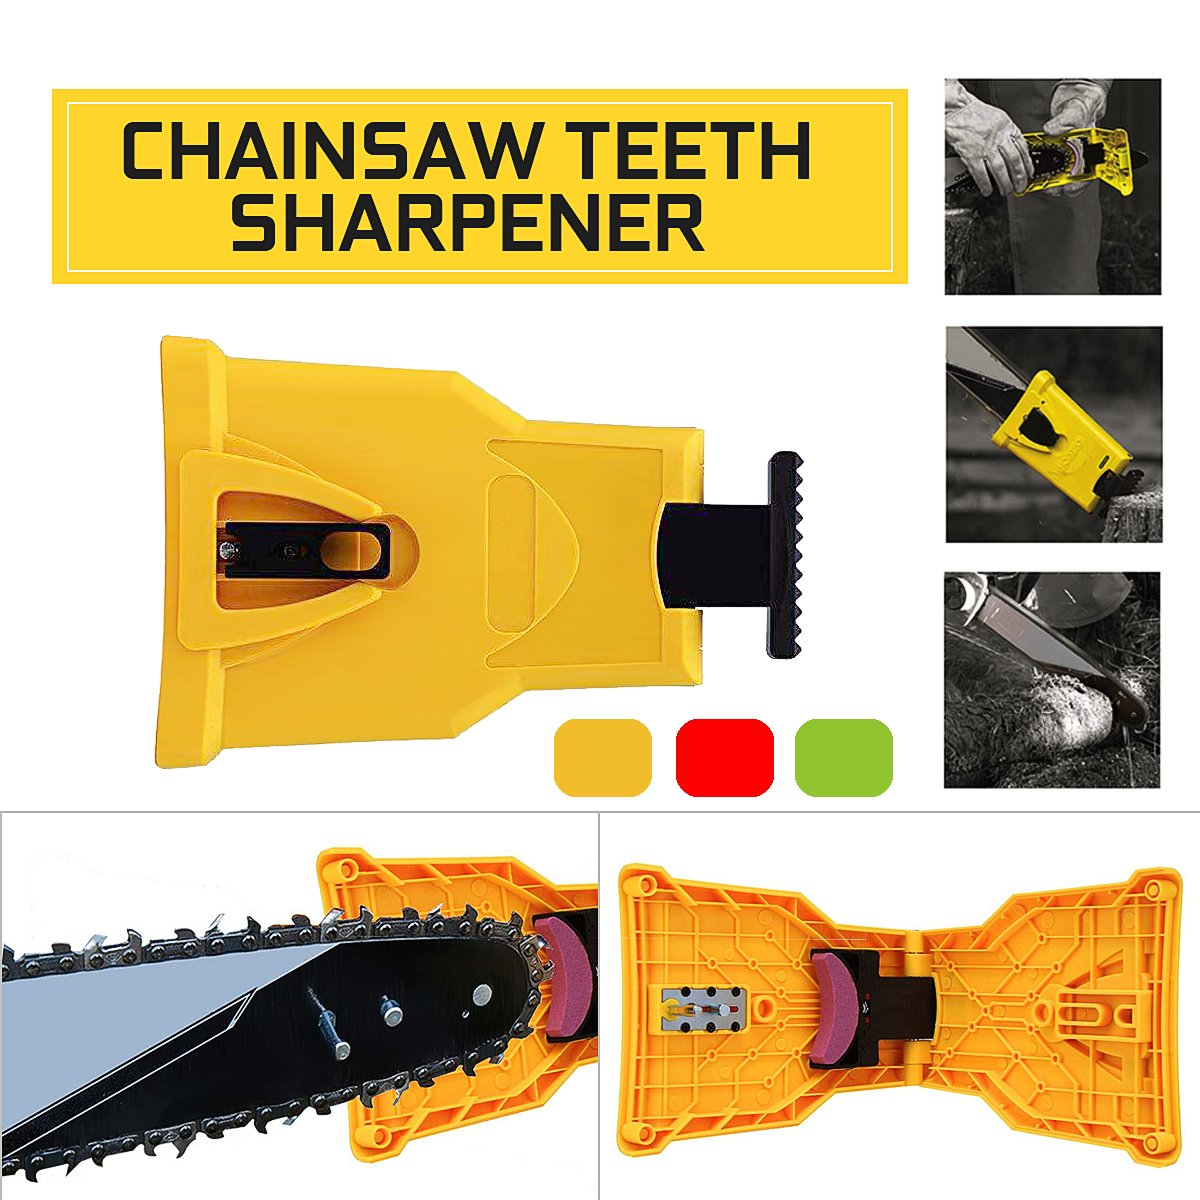 Chainsaw S Sharpener Self Sharpening Grinder S Sharpening Electric  Chain Saw Chain Sharpener Woodworking Tools